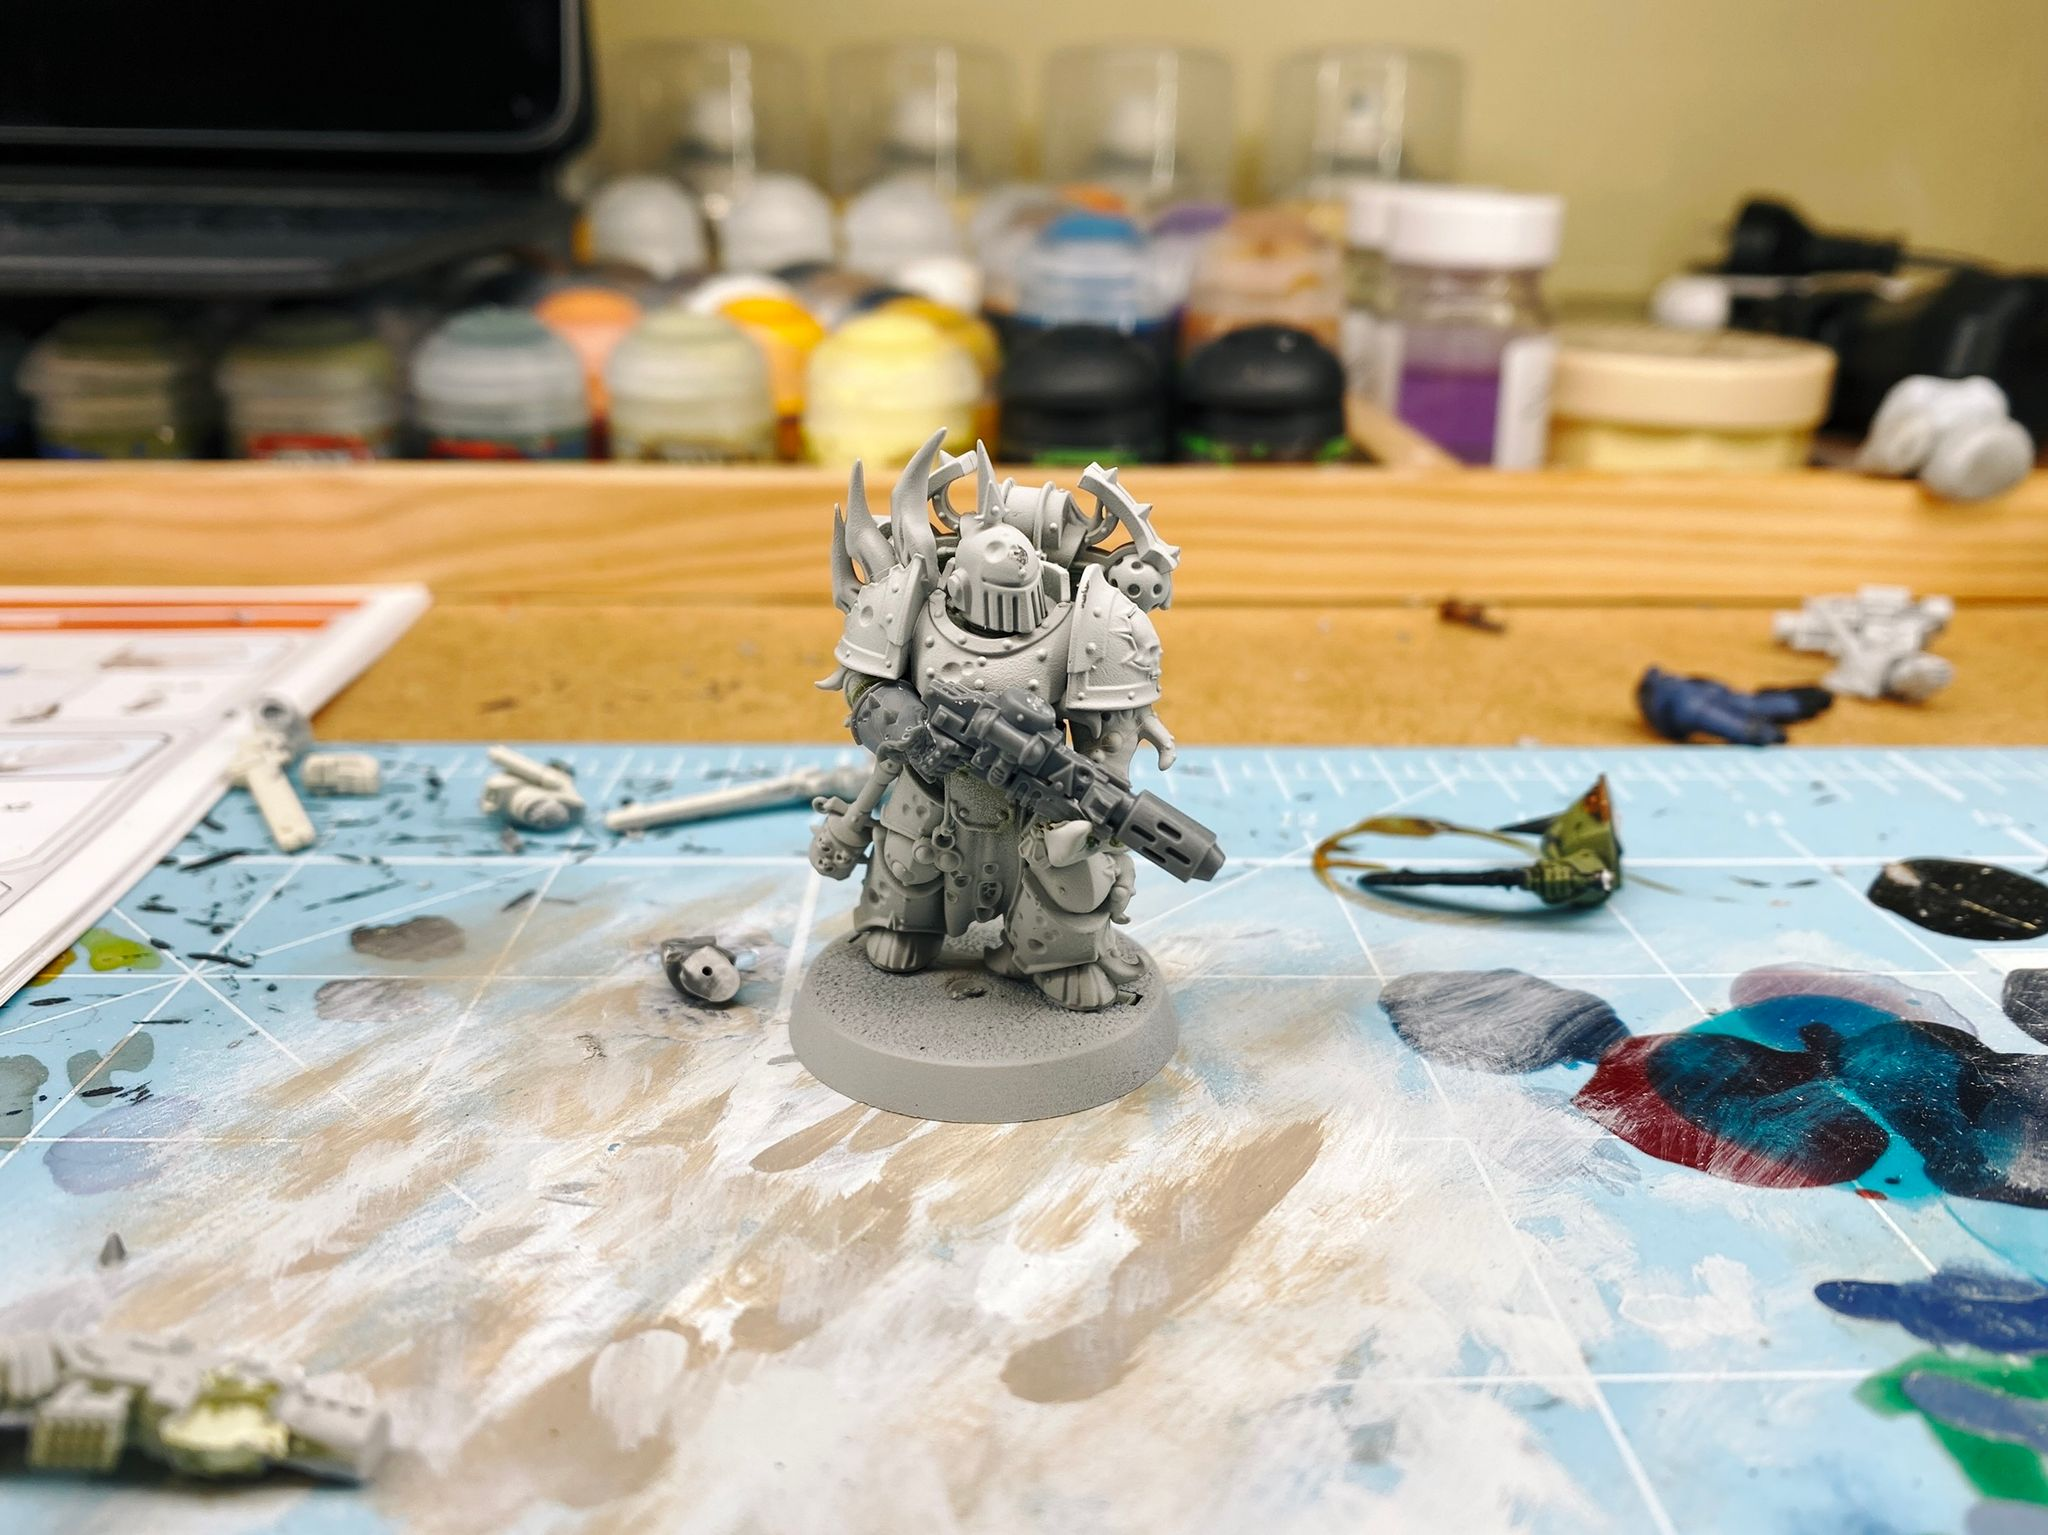 Another Warhammer 40,000 Plague Marine, this one has a tentacle for a left arm and is holding a meltagun. The gun and his right forearm are bare plastic and are the new parts I added.